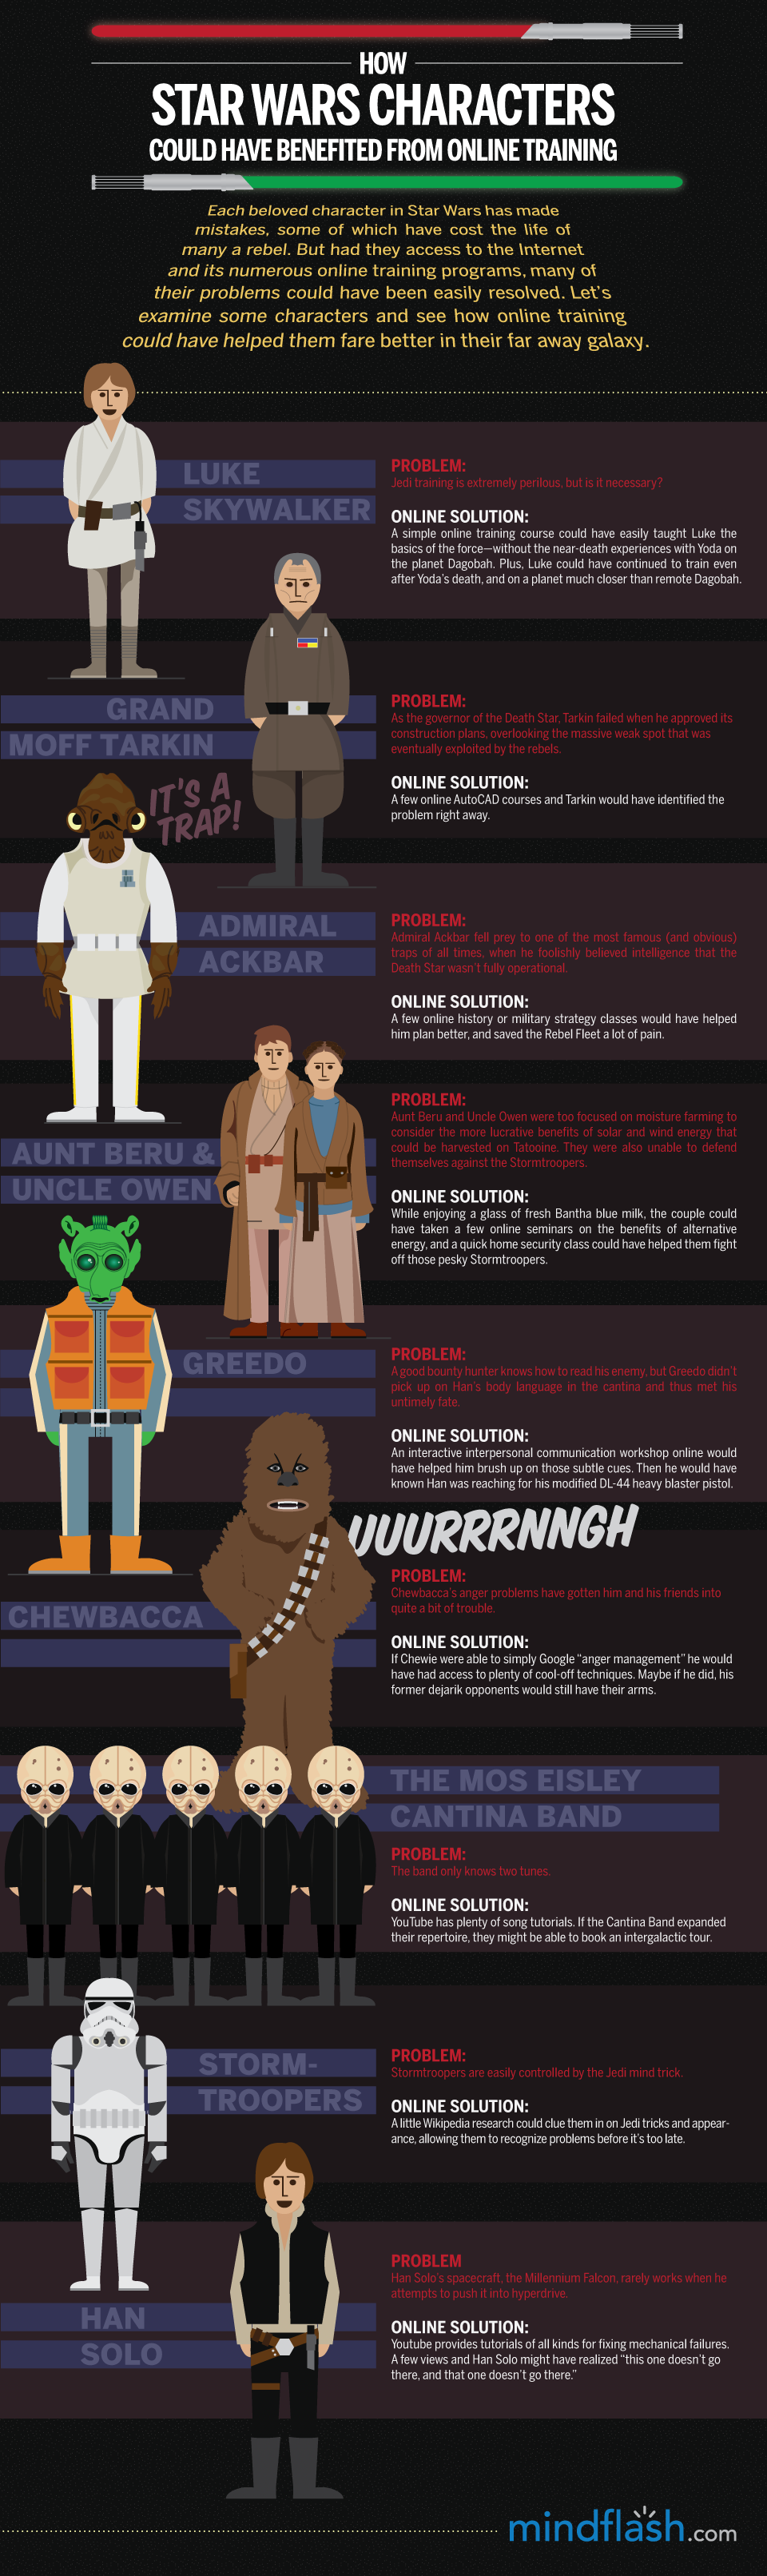 How Star Wars Characters Could Have Benefited From Online Training